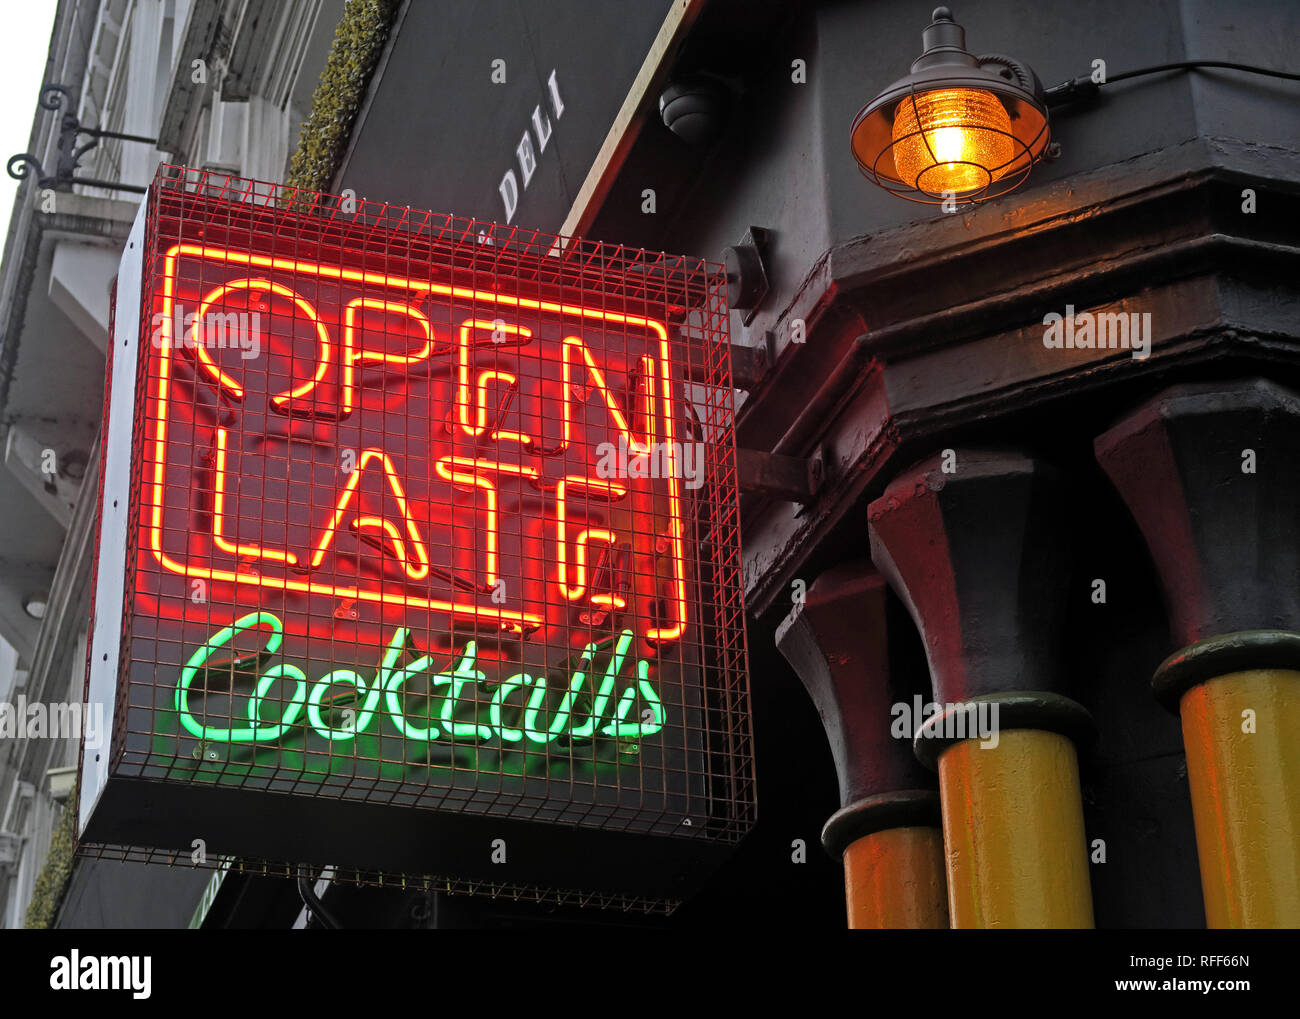 Open Late for Cocktails, Cocktail bar neon sign, Stevenson Square, NorthernQuarter, Manchester, England, UK,  M1 1DN - Stock Image